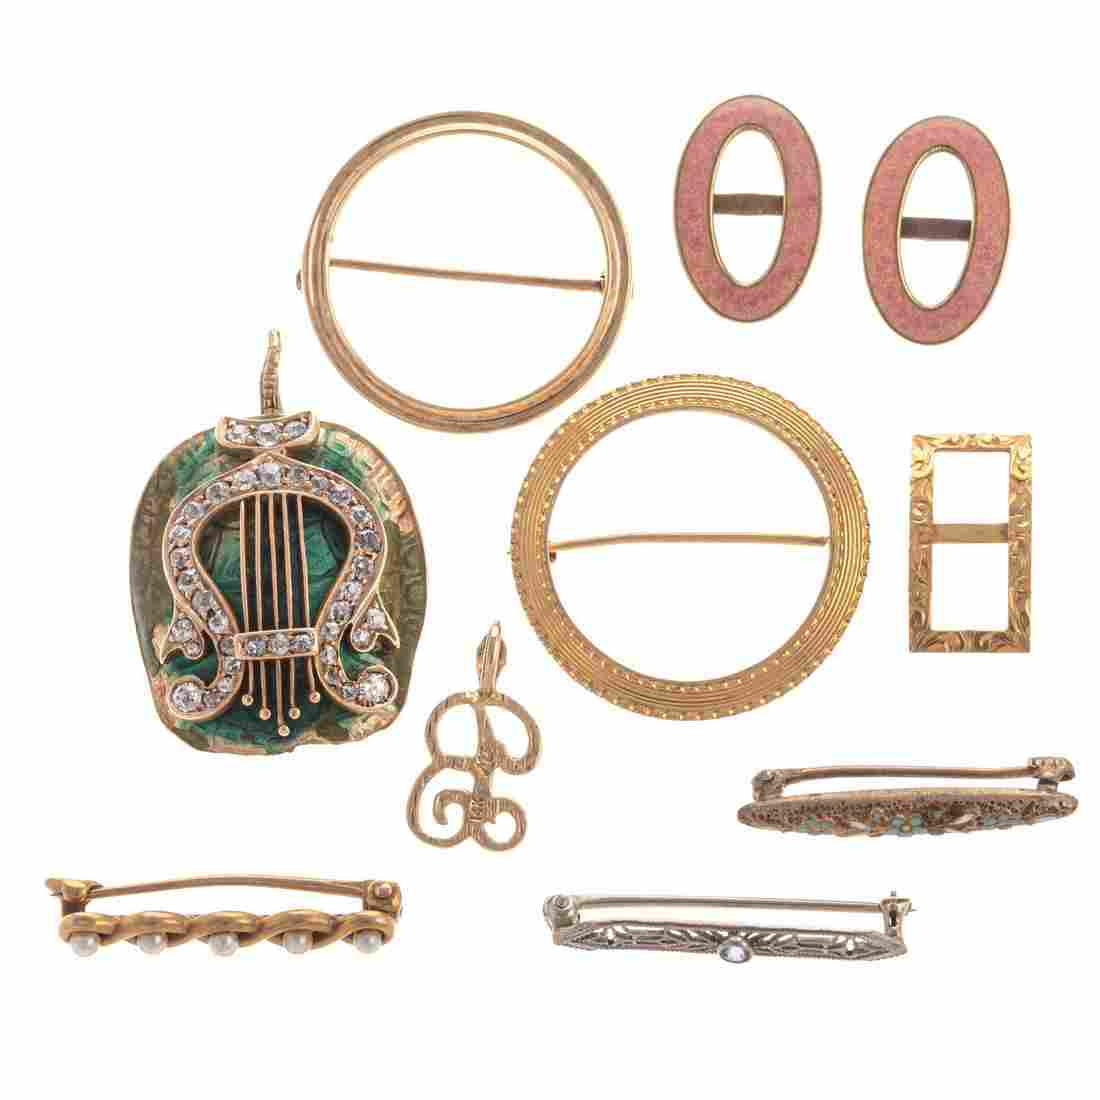 A Collection of Gold Brooches & More